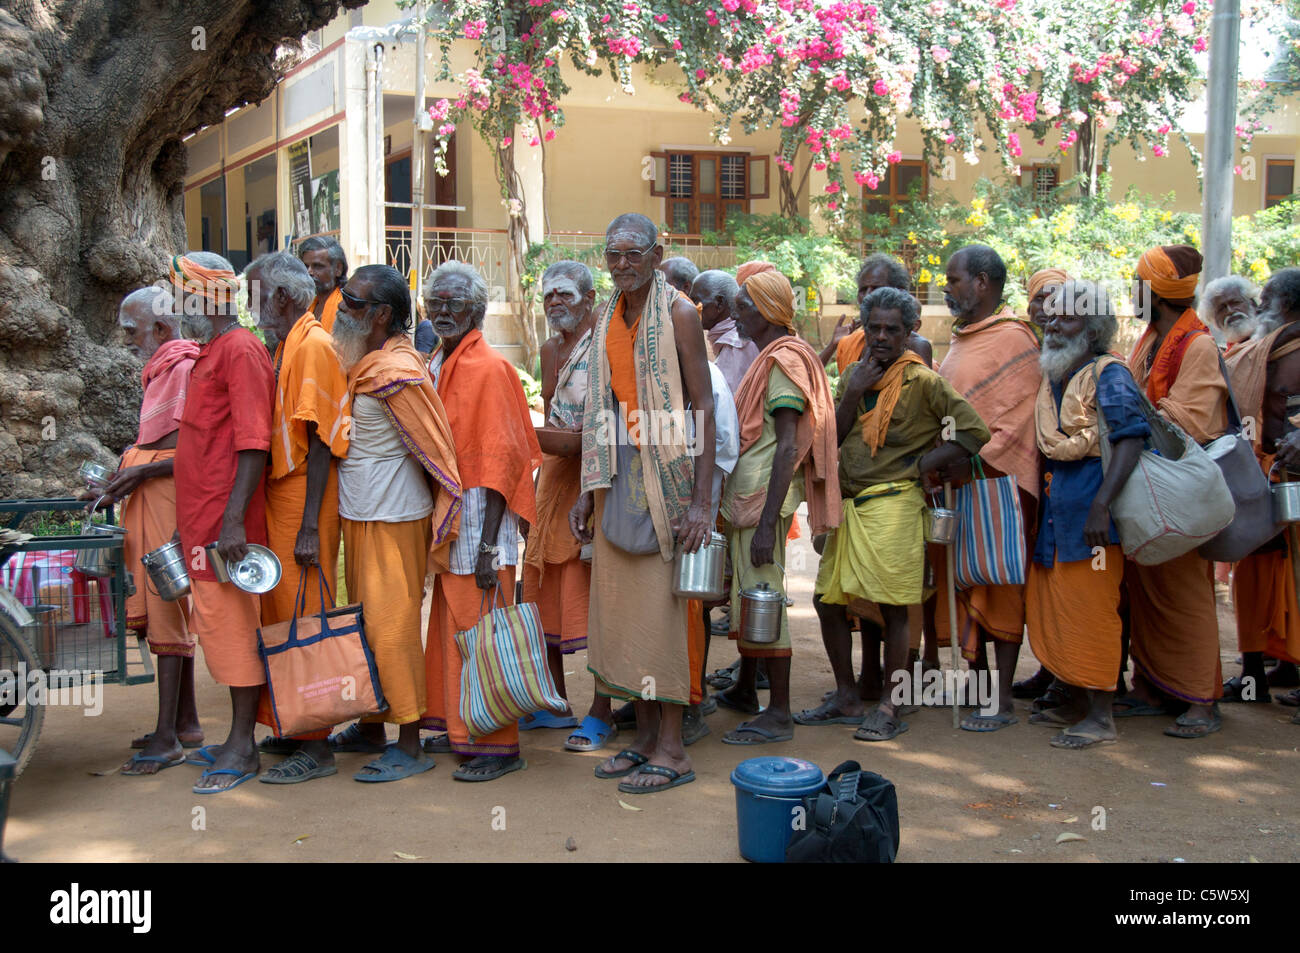 Sadhus queuing for food Sri Ramana Ashram Tiruvannamalai Tamil Nadu South India - Stock Image